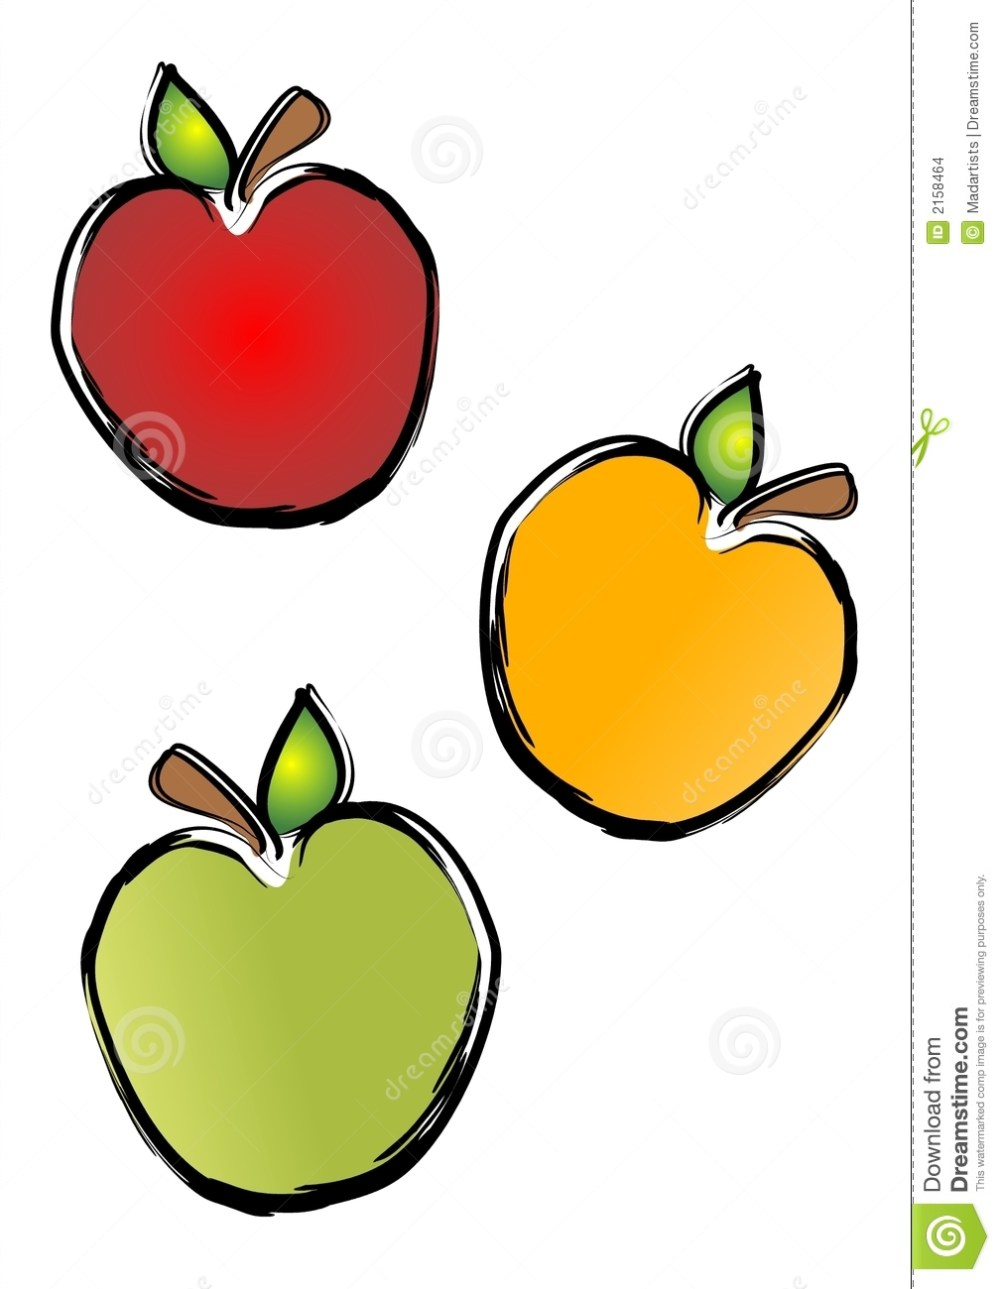 medium resolution of teacher apple clipart